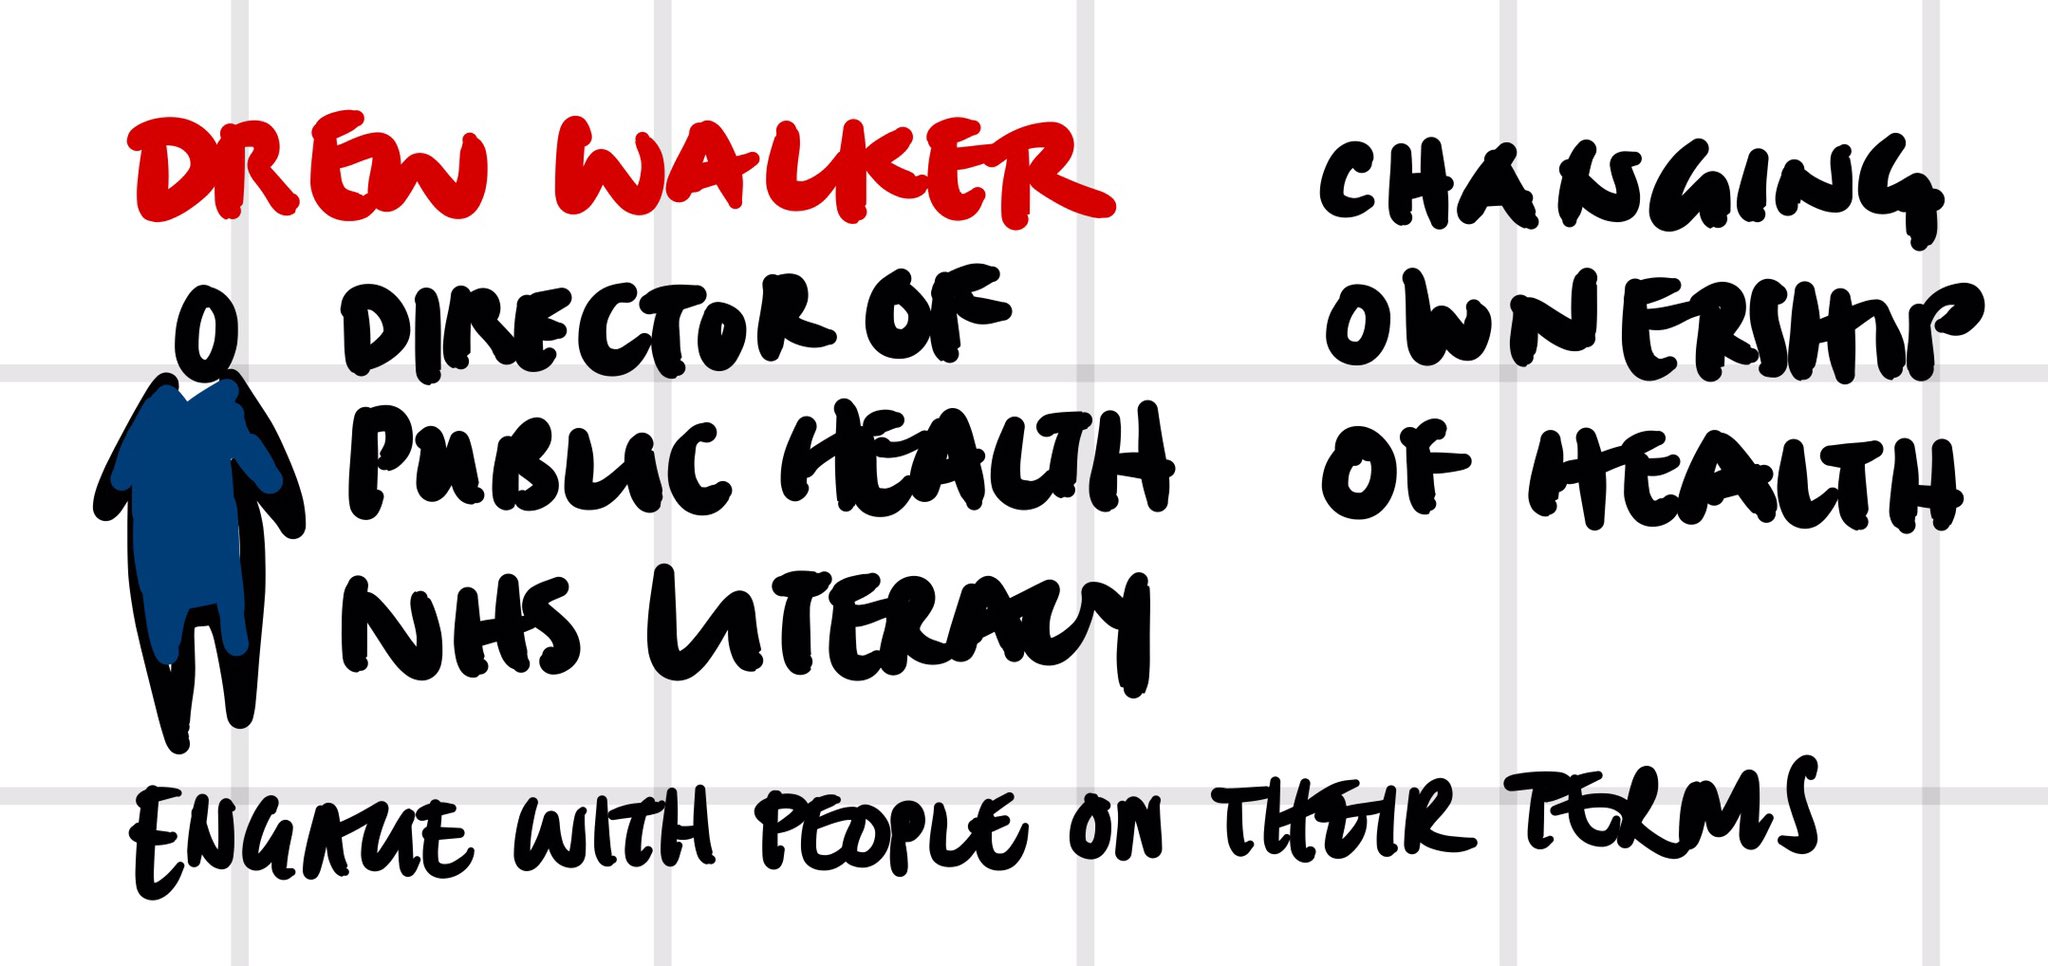 """Drew Walker, Director of Public Health @NHSTayside #healthlitdiscovery """"Engage with people on their terms"""" https://t.co/DBSbveSNY5"""